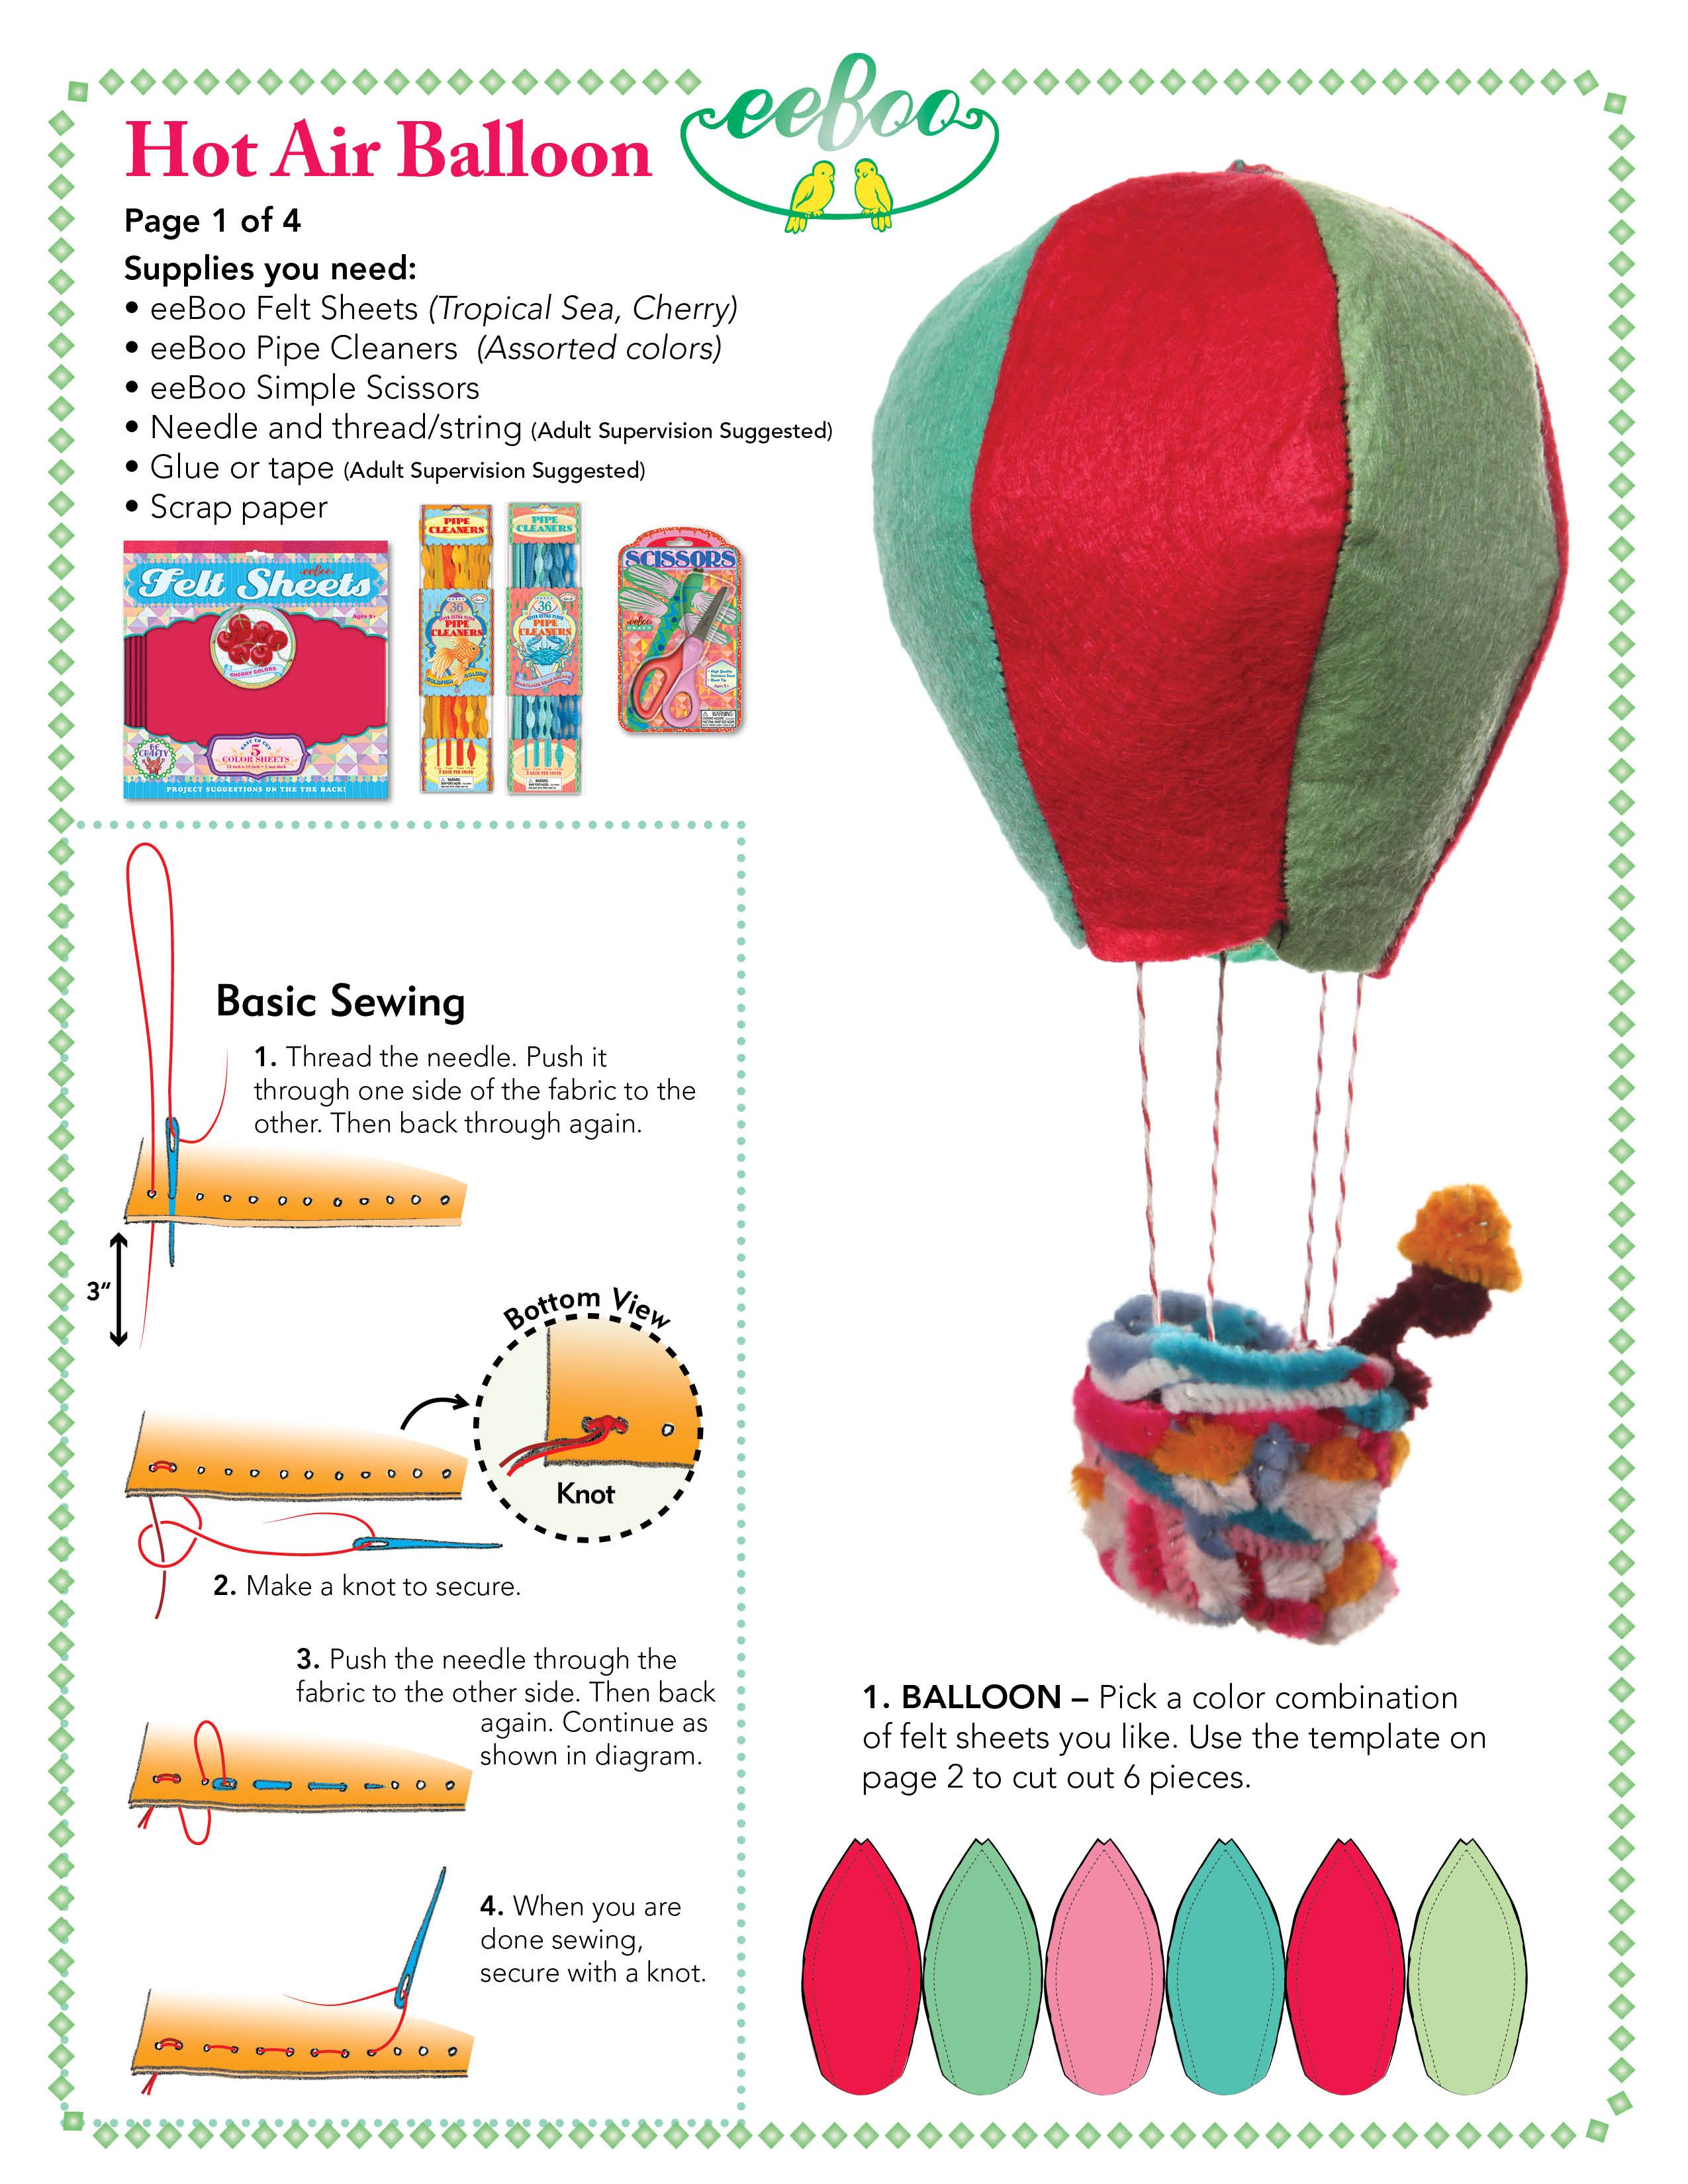 Up, Up, and Away in Your Own Hot-air Balloon!